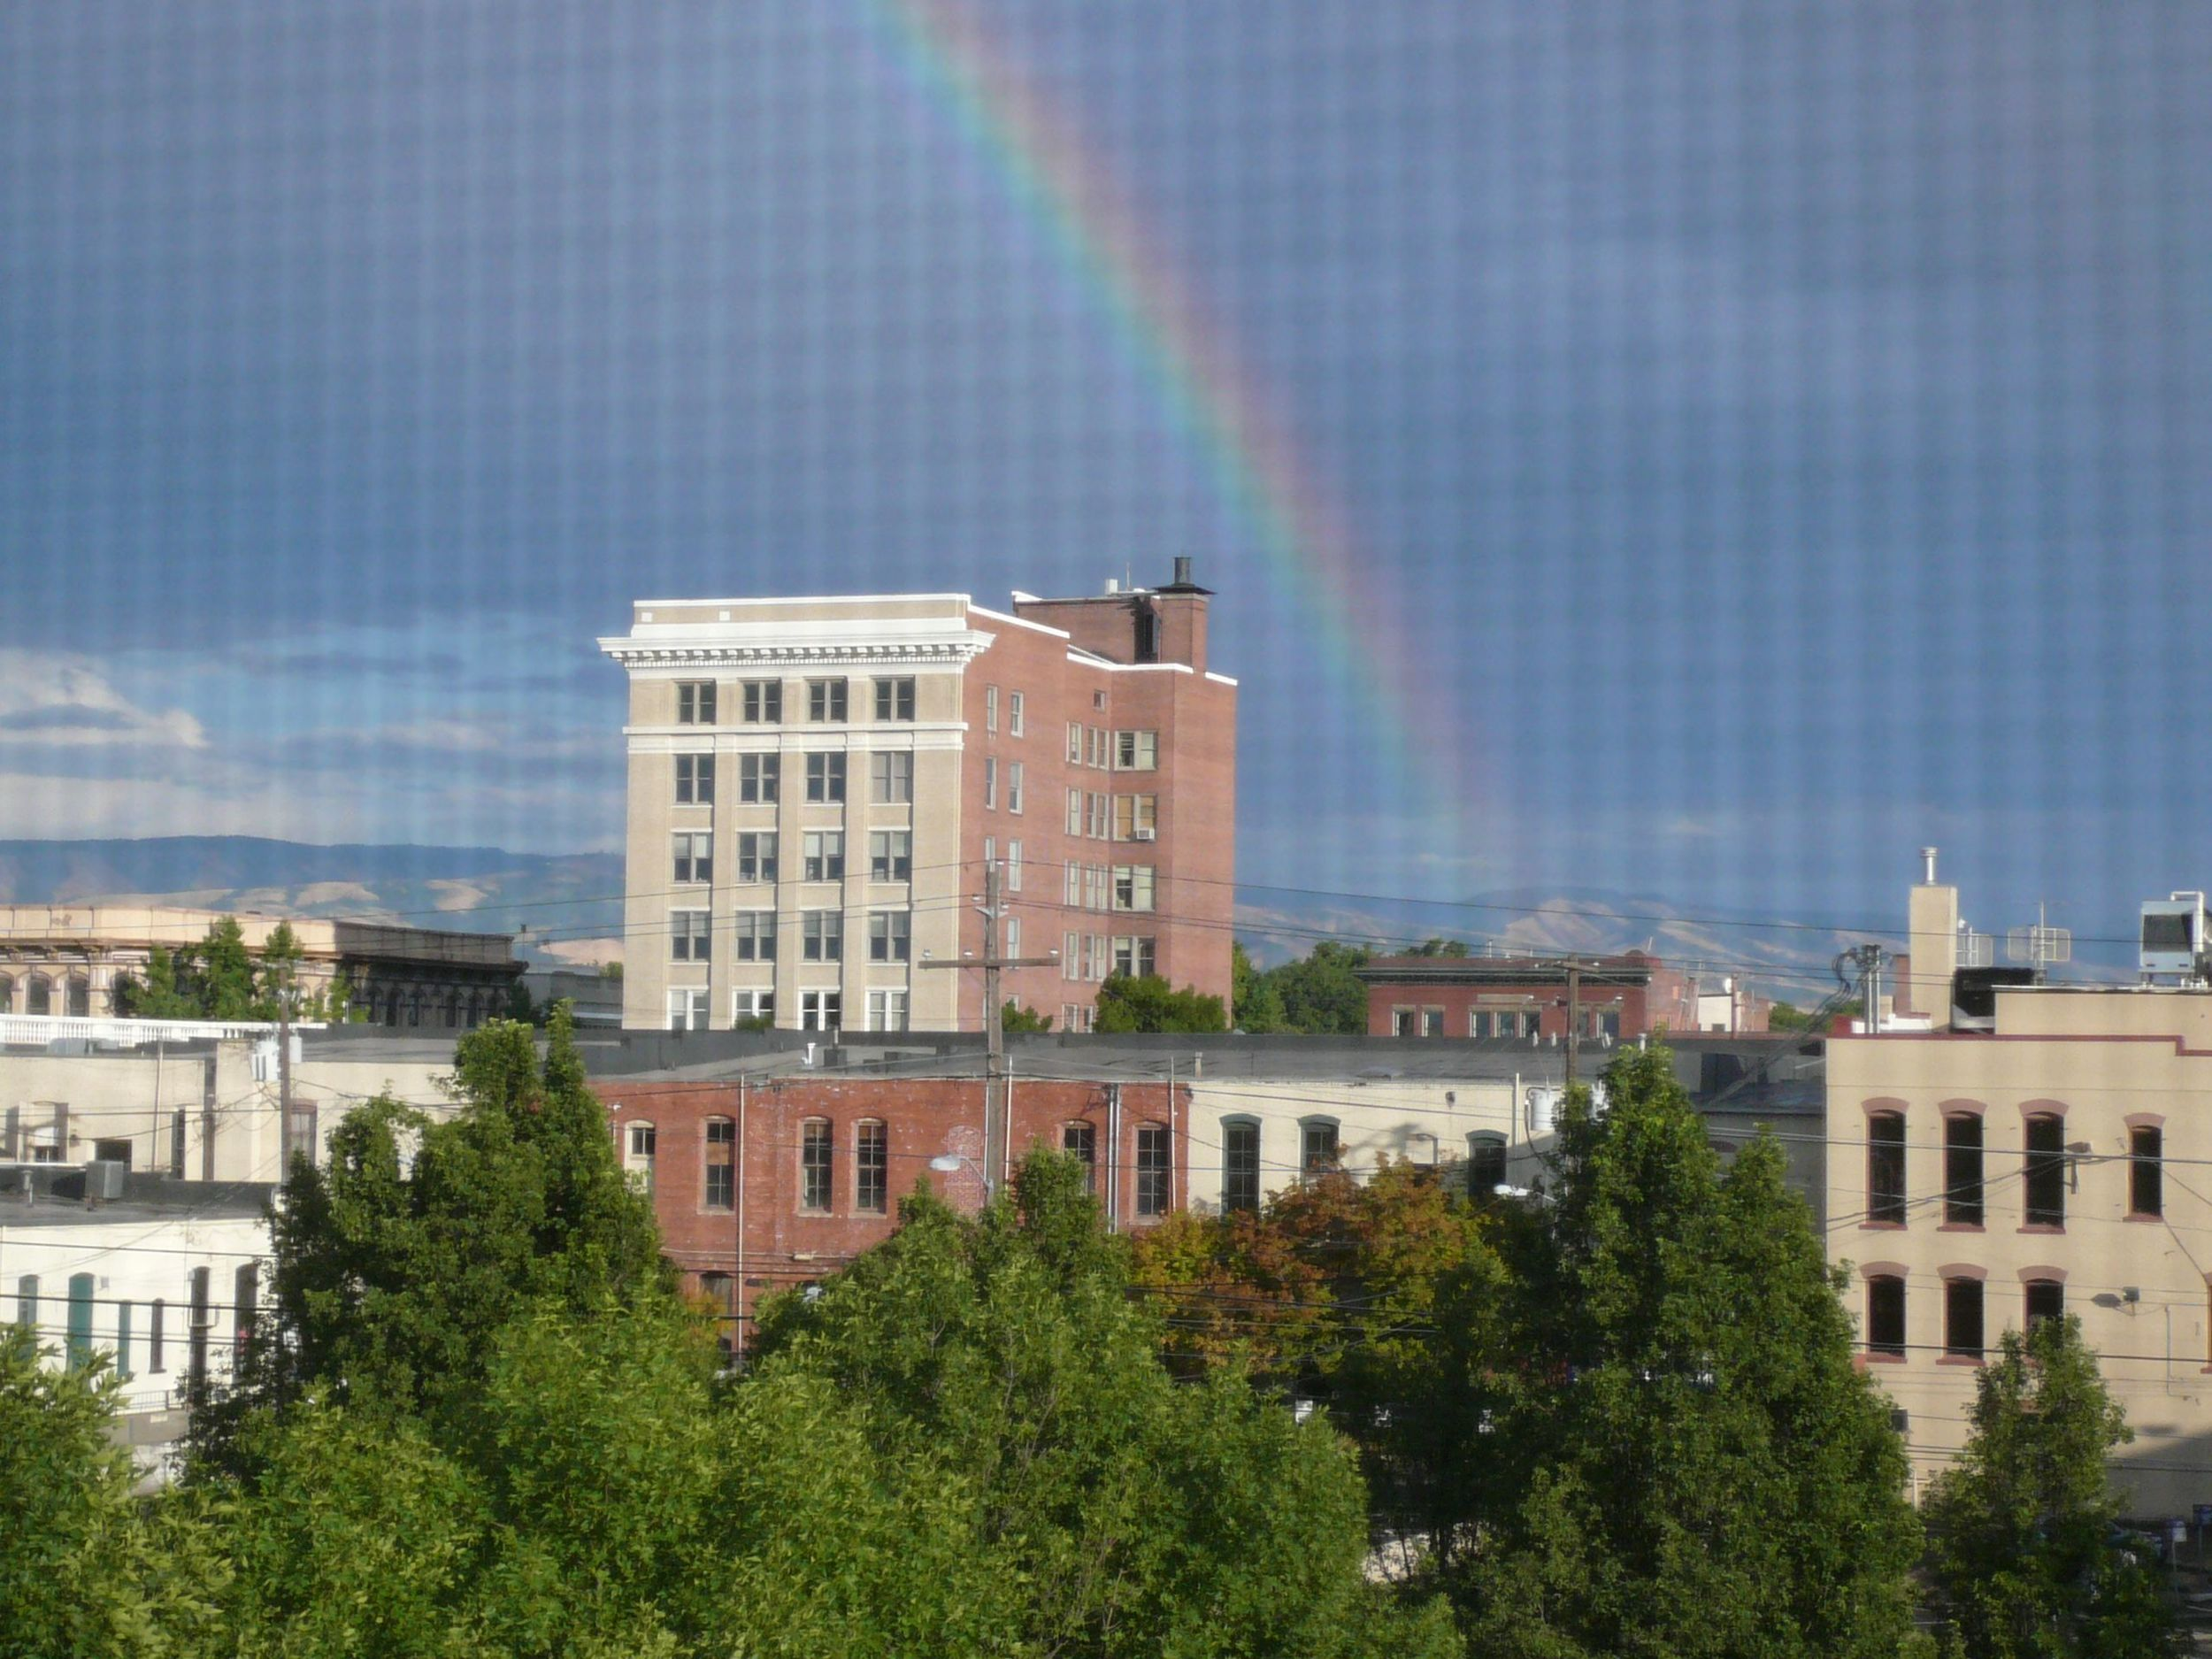 Marcus Whitman Hotel and Rainbow to the east.